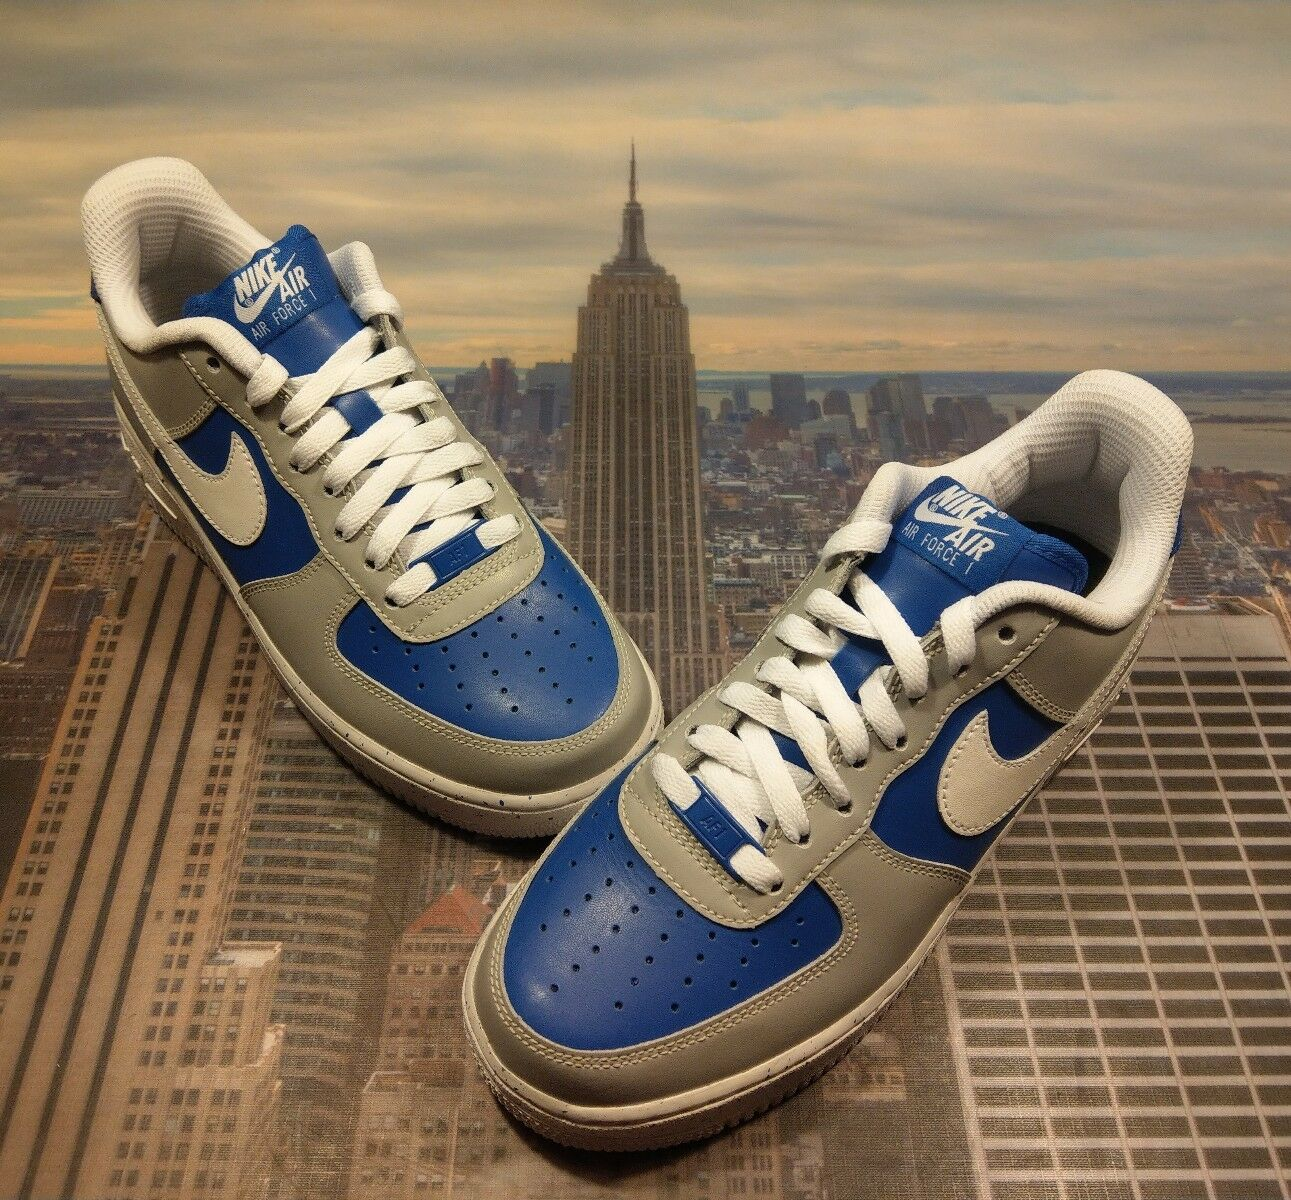 Nike iD Air Force 1 Military blueee AJ4 Men's Size 7 Low Mid High AH6512 991 New